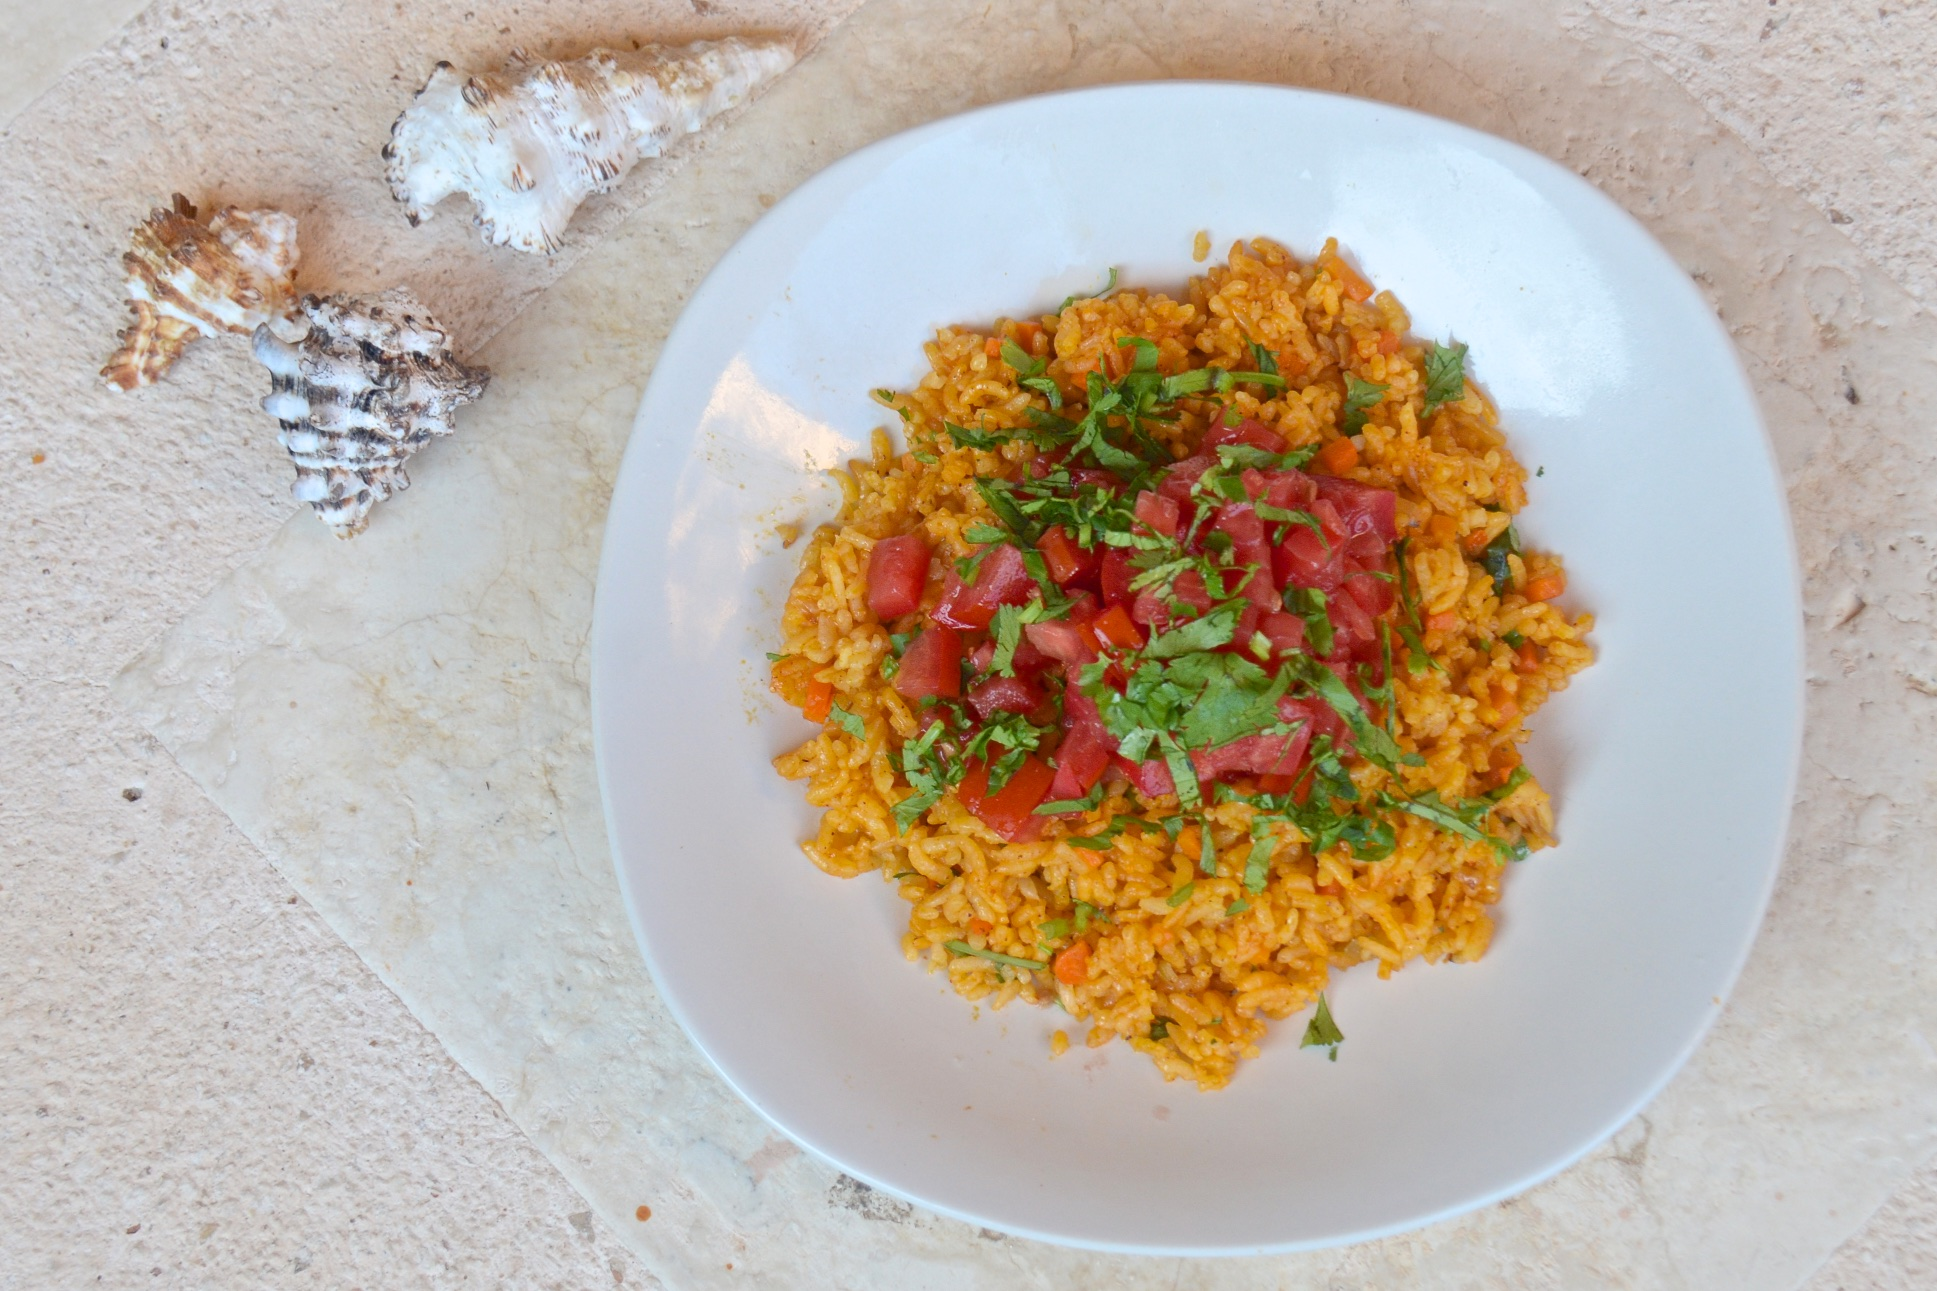 Mexican yellow rice with achiote | Olive Oil and Lemons | Dina Honke